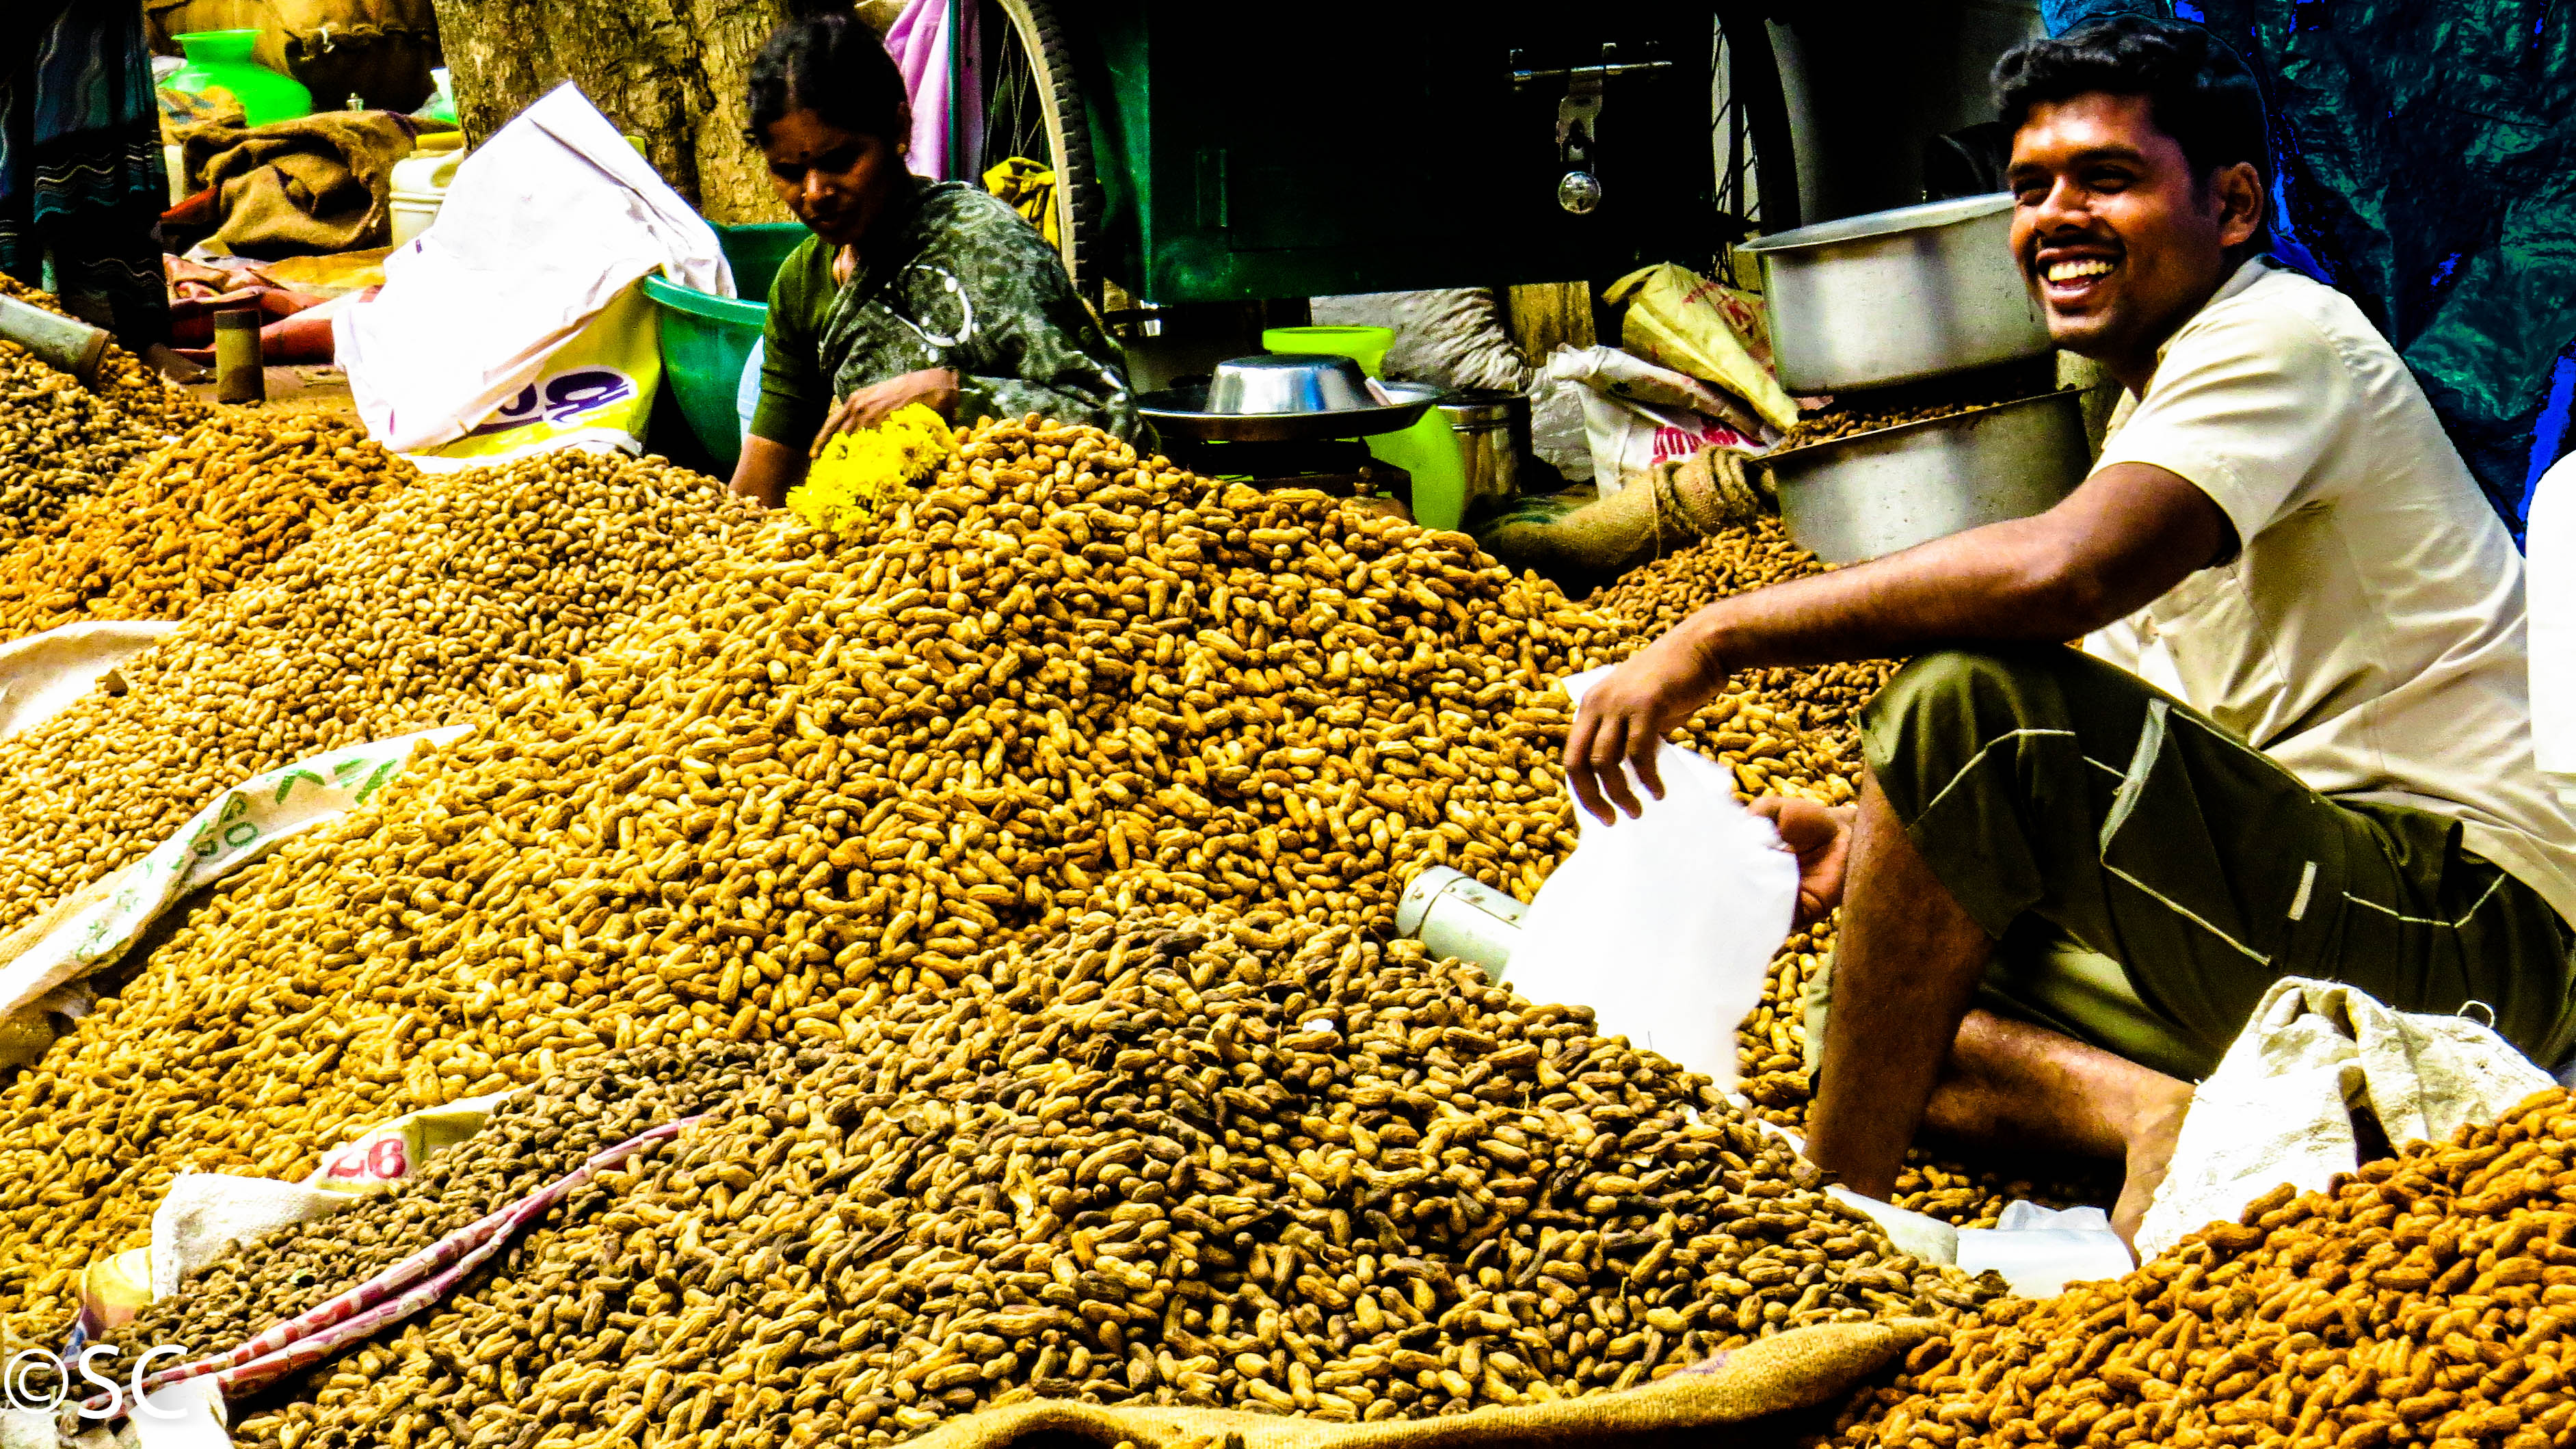 kadlekai parishe aka the groundnuts fair in india by sujay simha